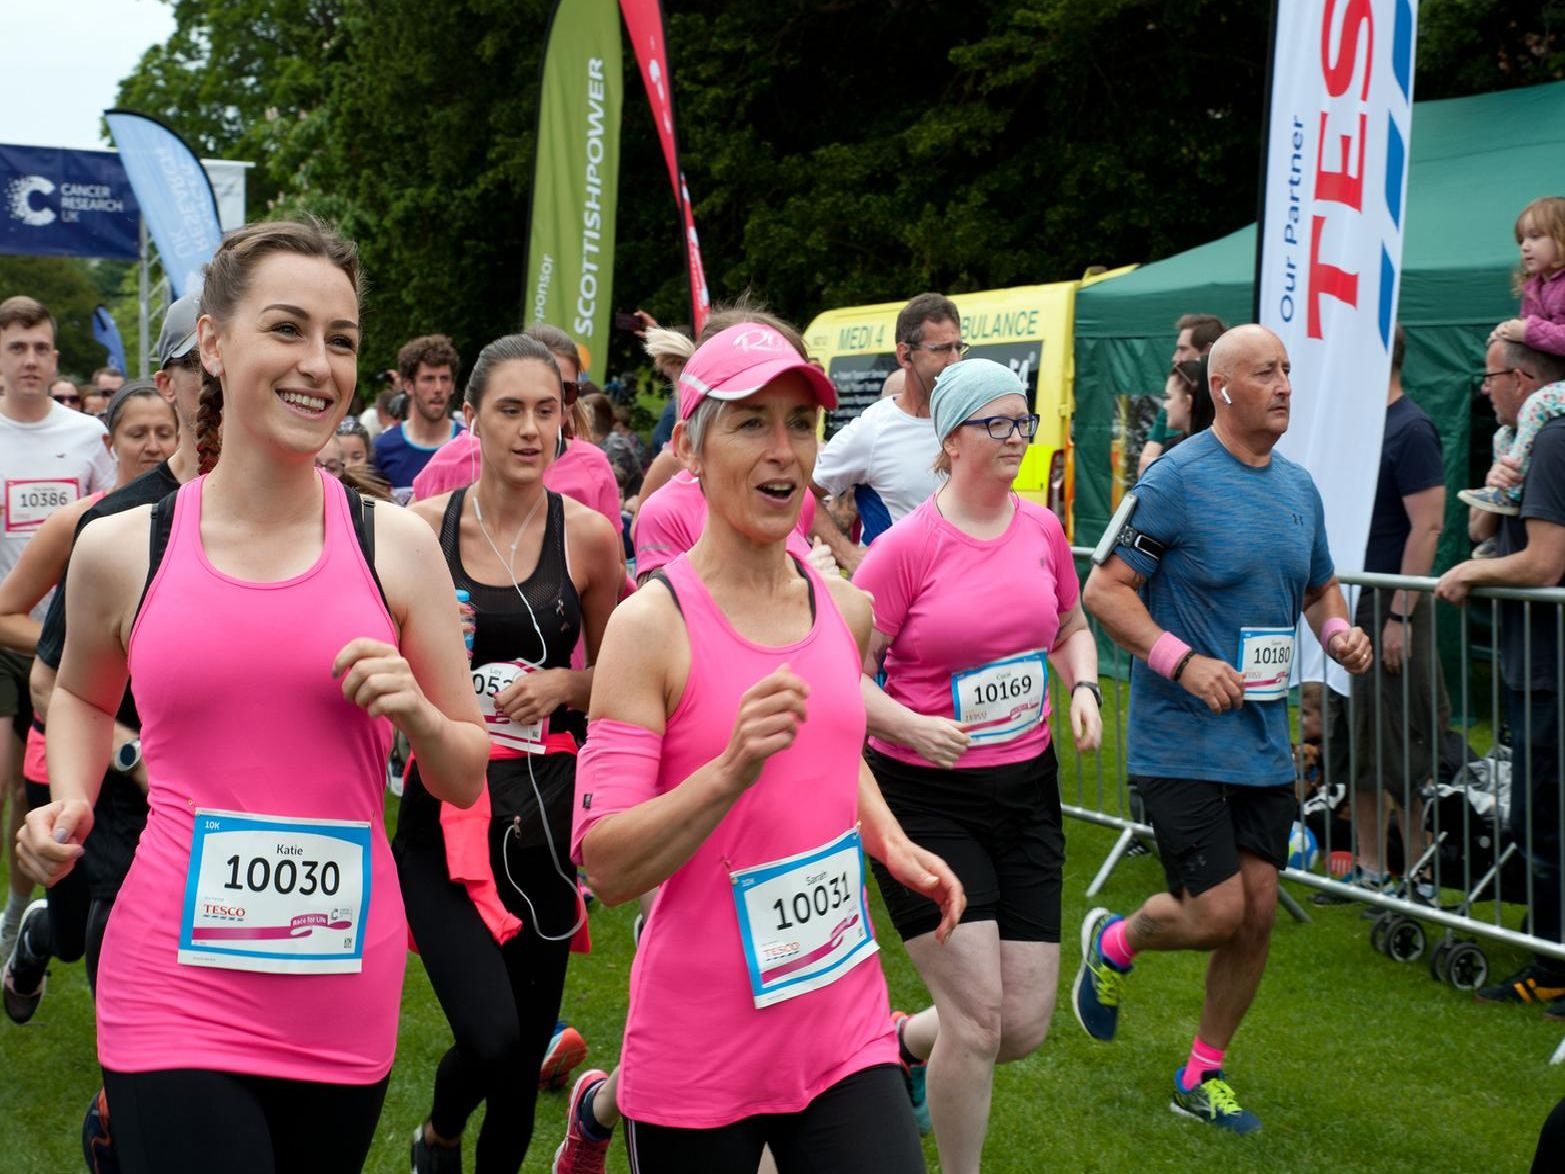 Race for life in Alexandra Park. Photo by Frank Copper